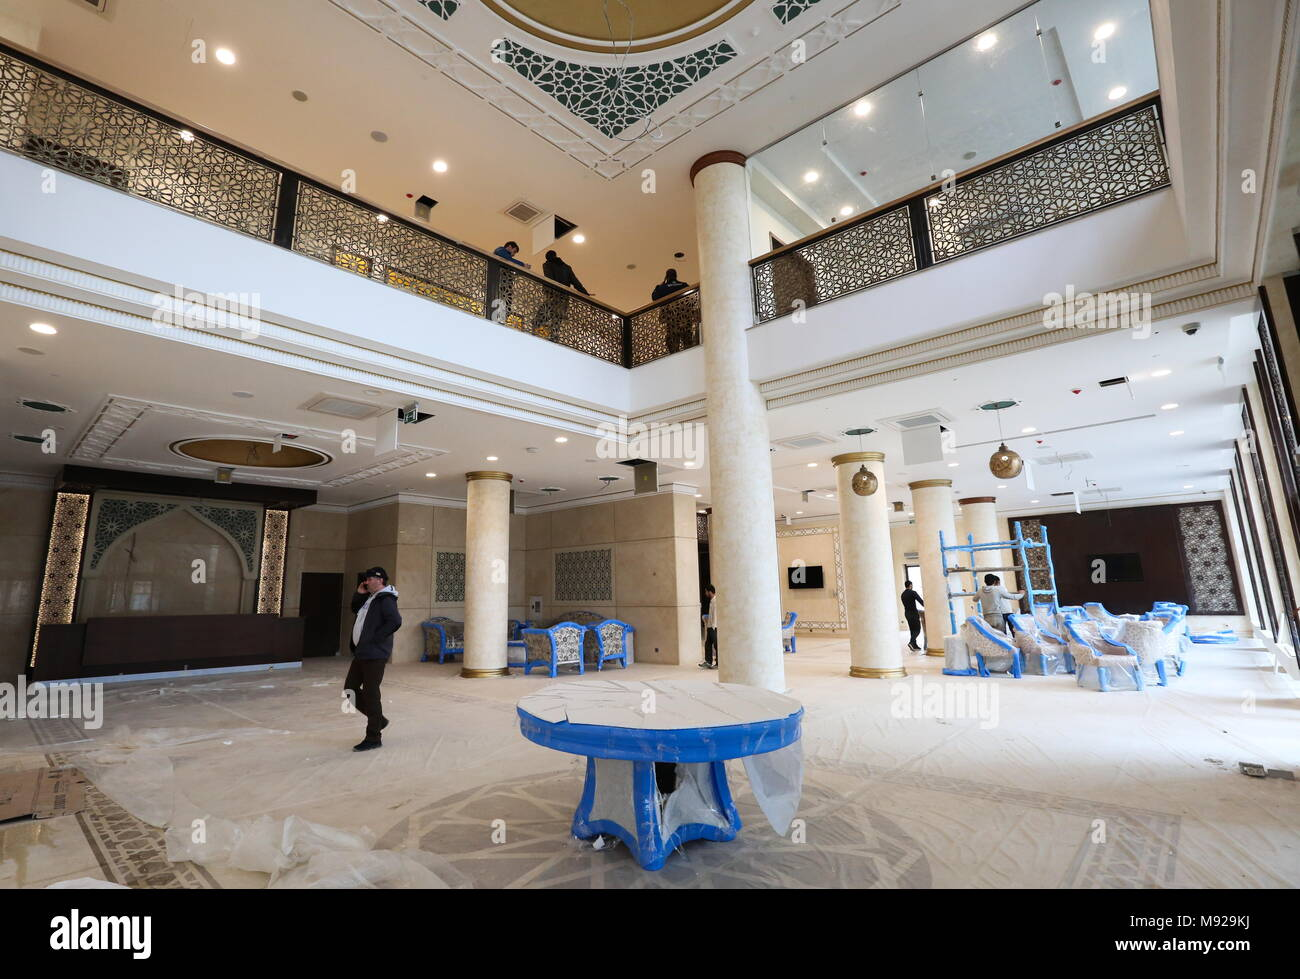 Grozny, Russia. 21st Mar, 2018. GROZNY, CHECHNYA, RUSSIA - MARCH 21, 2018: Lobby in The Local five star hotel under construction that is to be the base for Egypt's national football team during the 2018 FIFA World Cup. Yelena Afonina/TASS Credit: ITAR-TASS News Agency/Alamy Live News - Stock Image